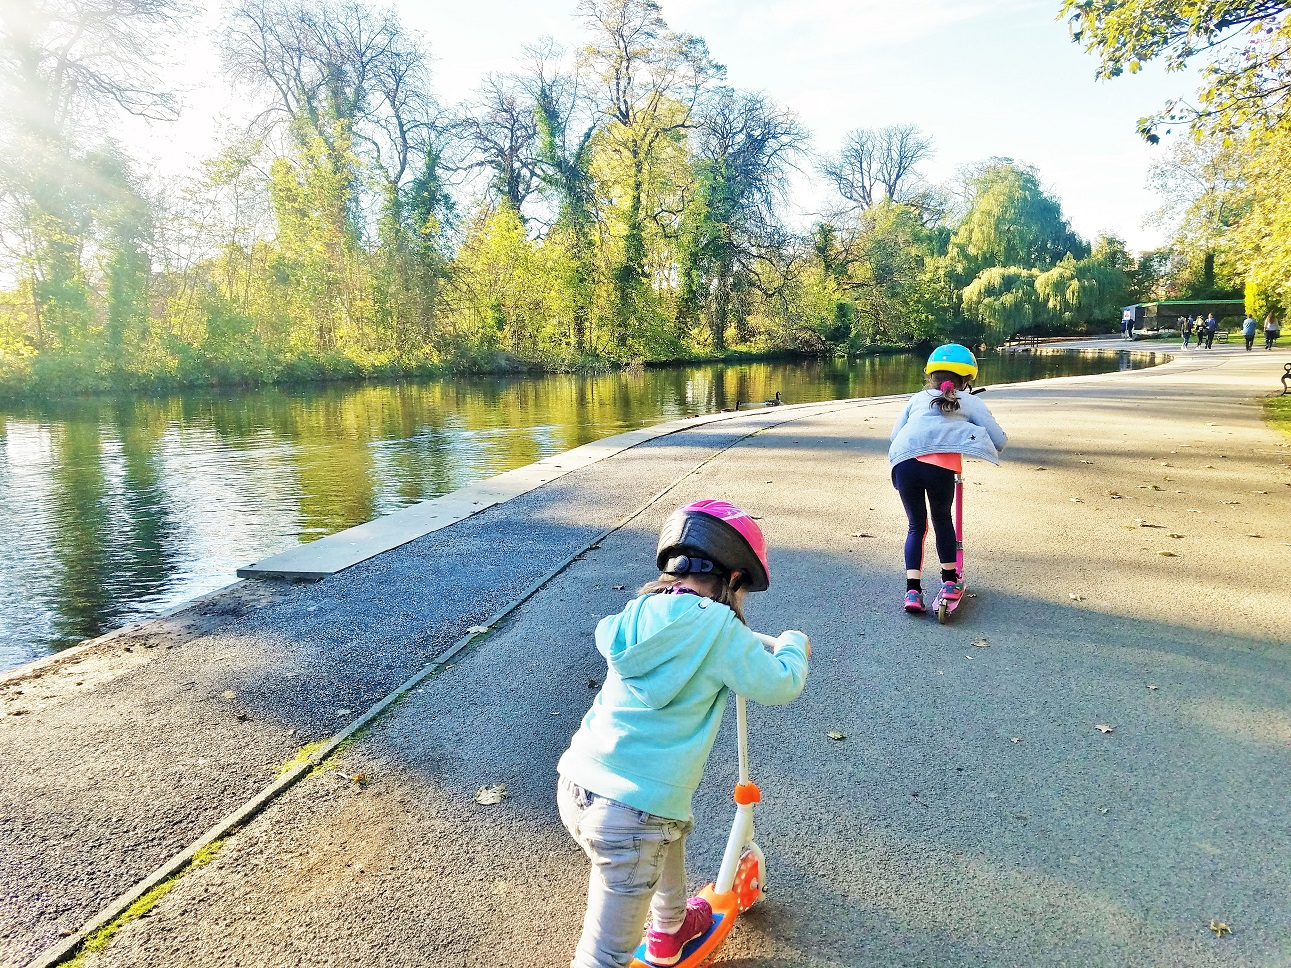 Hidden issues like a change in circumstances can cause bad behaviour in children - two children playing on scooters